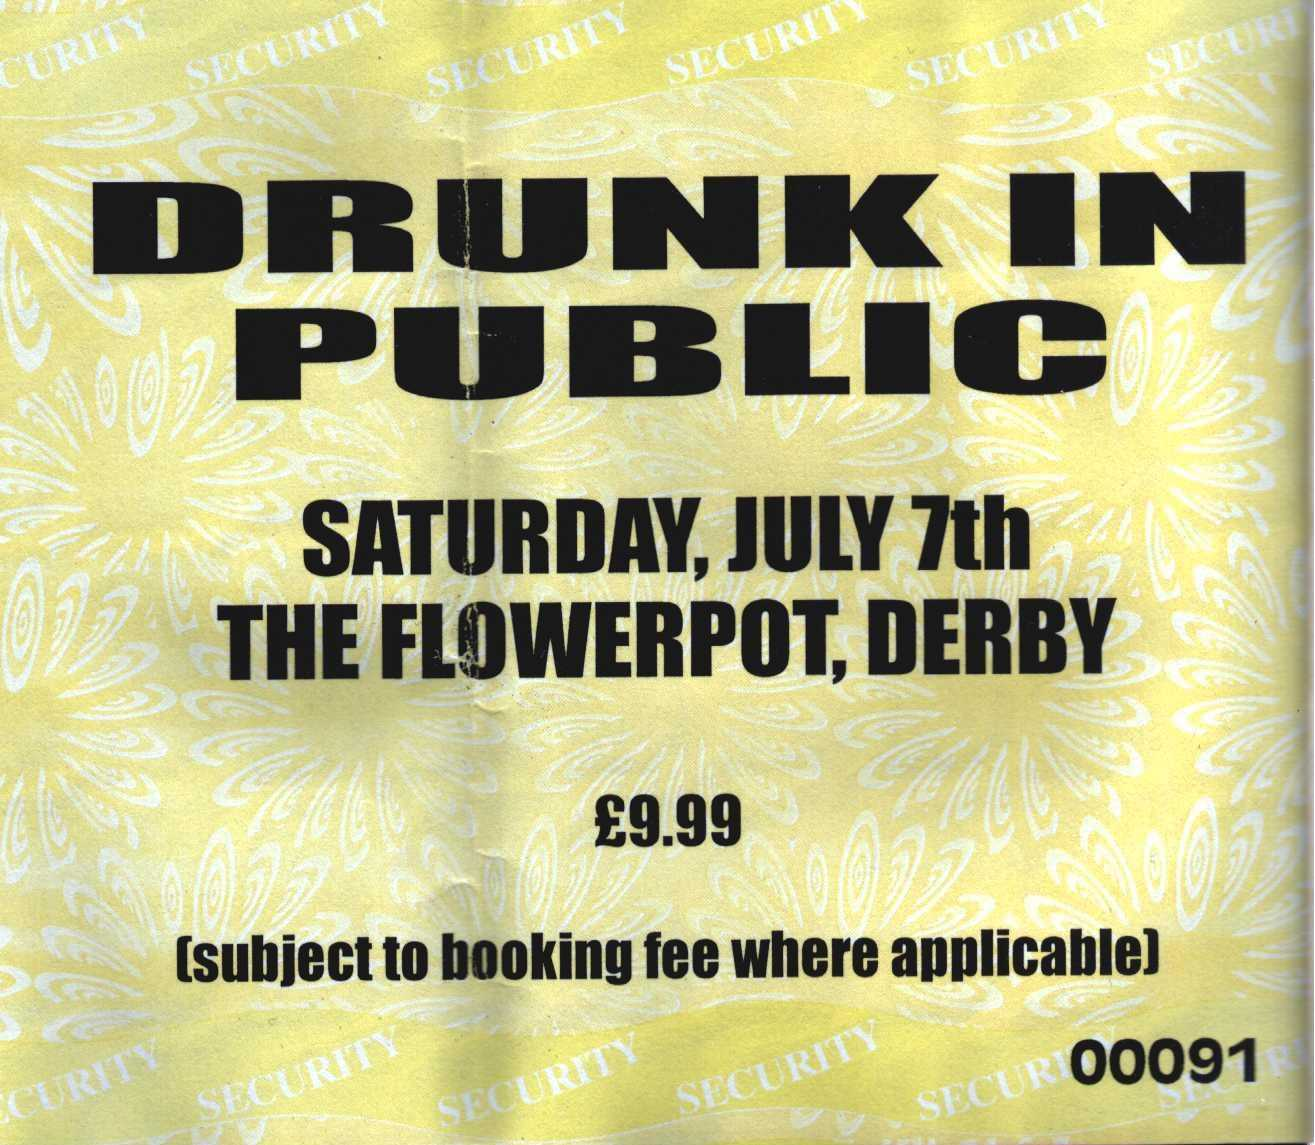 07 July 2001: Drunk In Public - The Flowerpot, Derby, England, UK